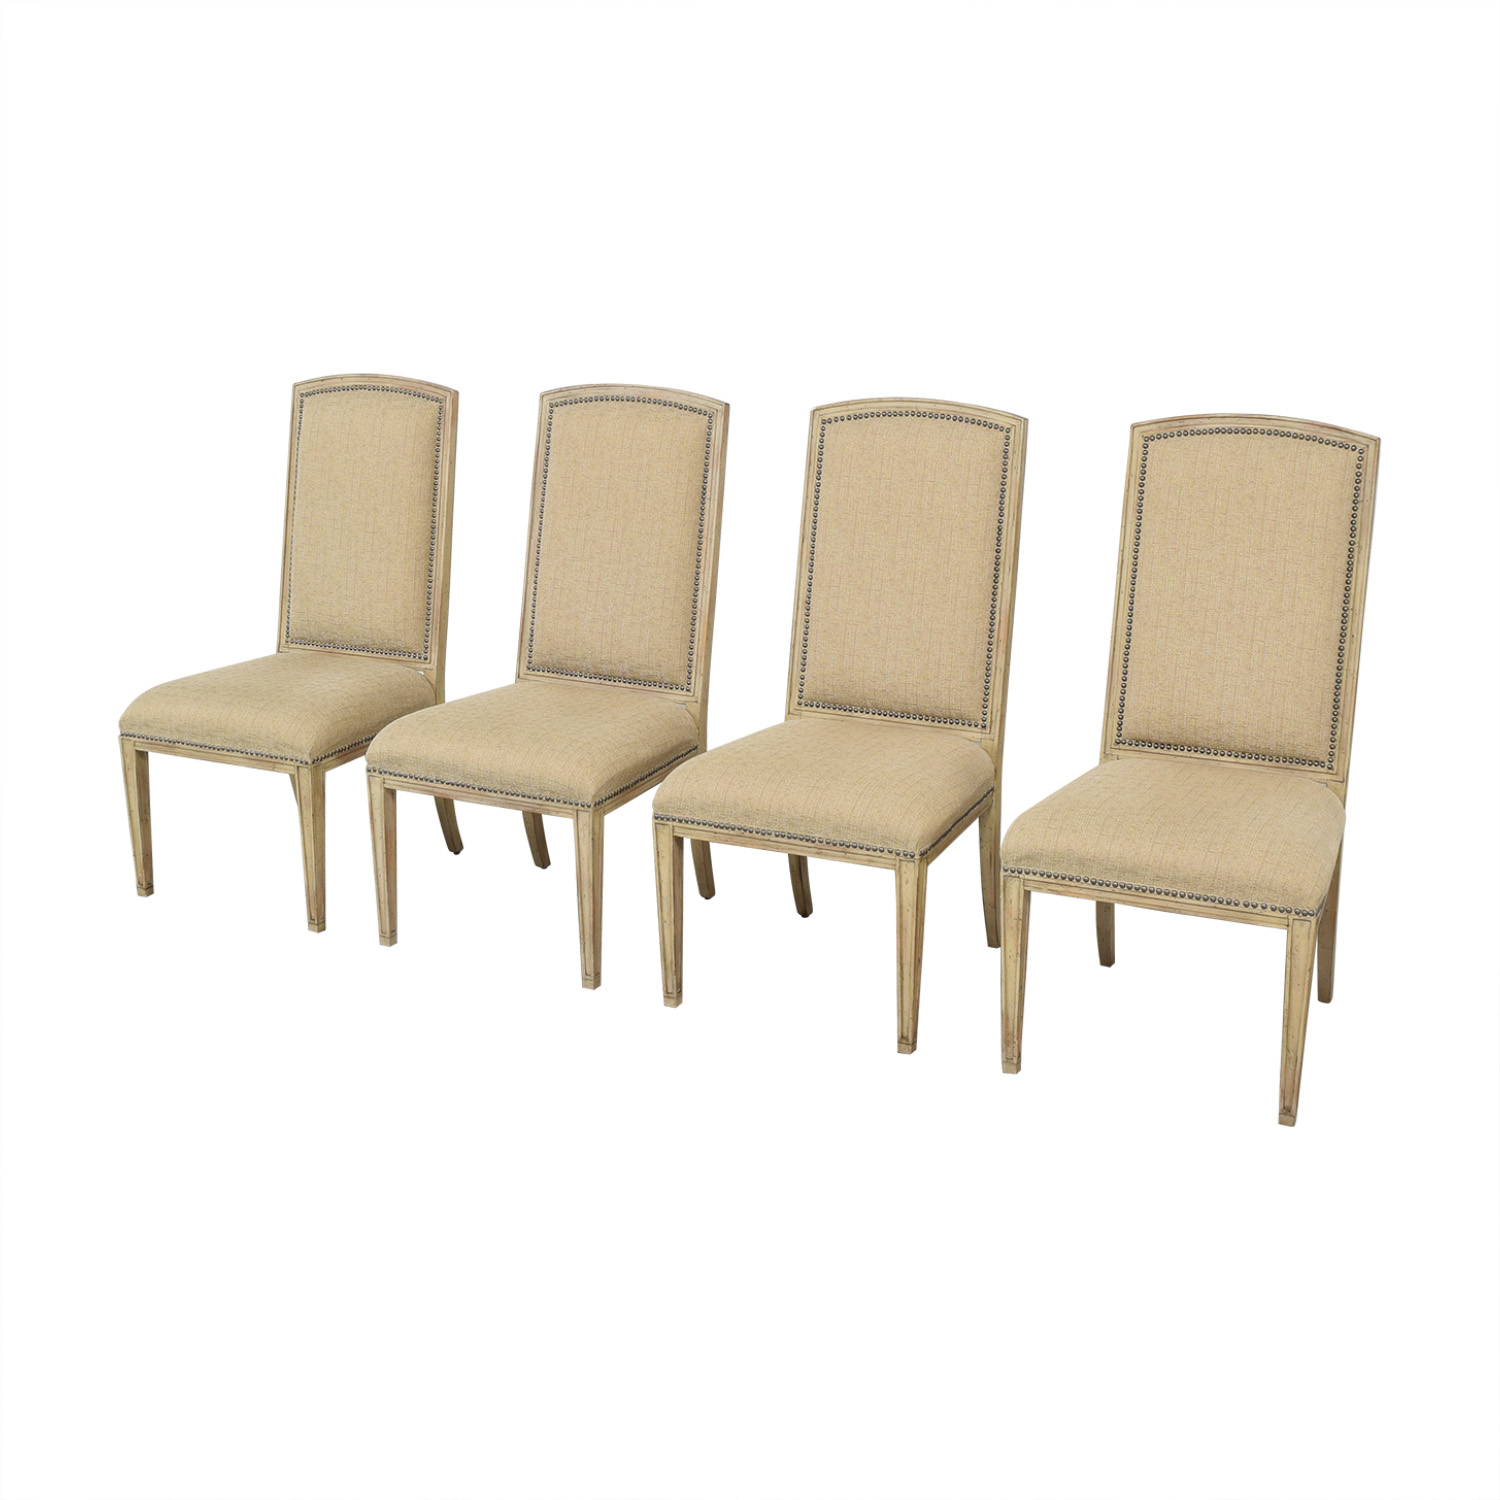 Hooker Furniture Sanctuary Dining Chairs Hooker Furniture